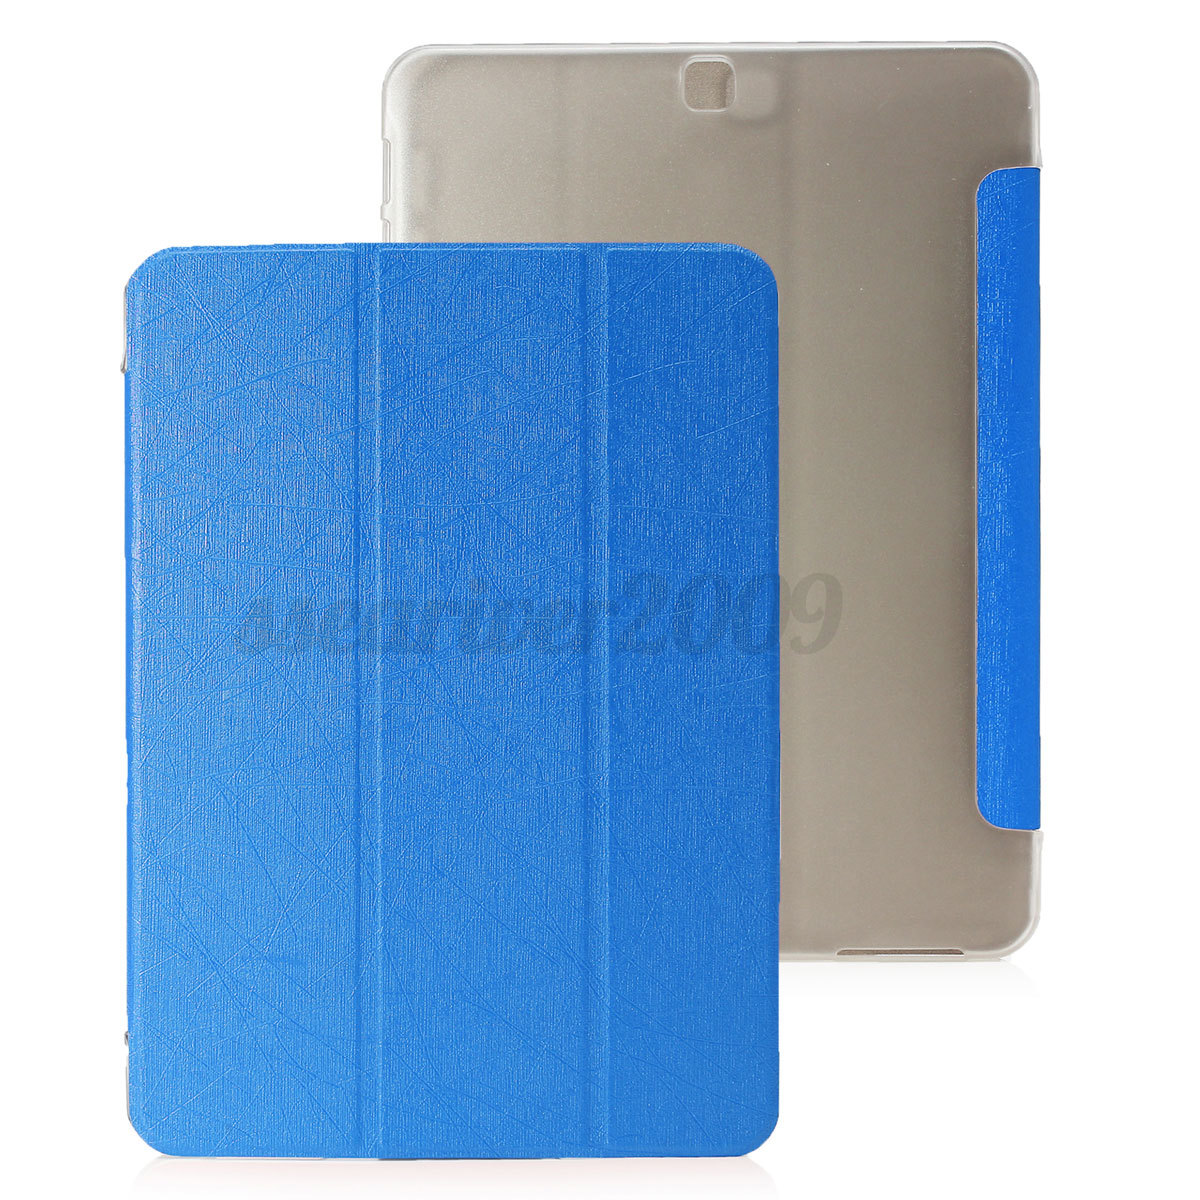 Housse tui slim cover case support cuir pu pr samsung for Housse tab s2 8